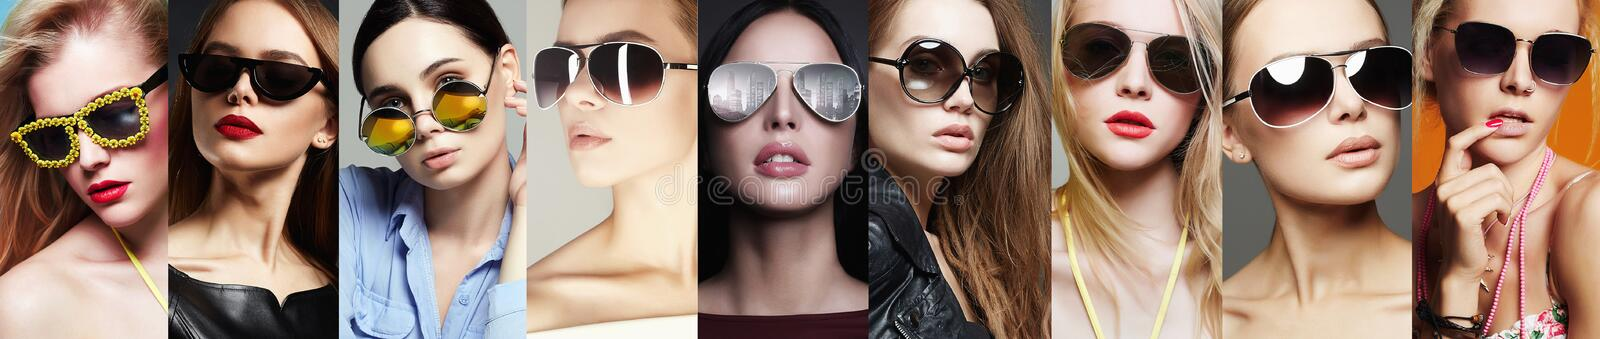 Beauty Fashion collage. Women in Sunglasses. Beauty Fashion collage. Beautiful young Women in Sunglasses. Fashionable Girls in Glasses. Eyewear style royalty free stock photography